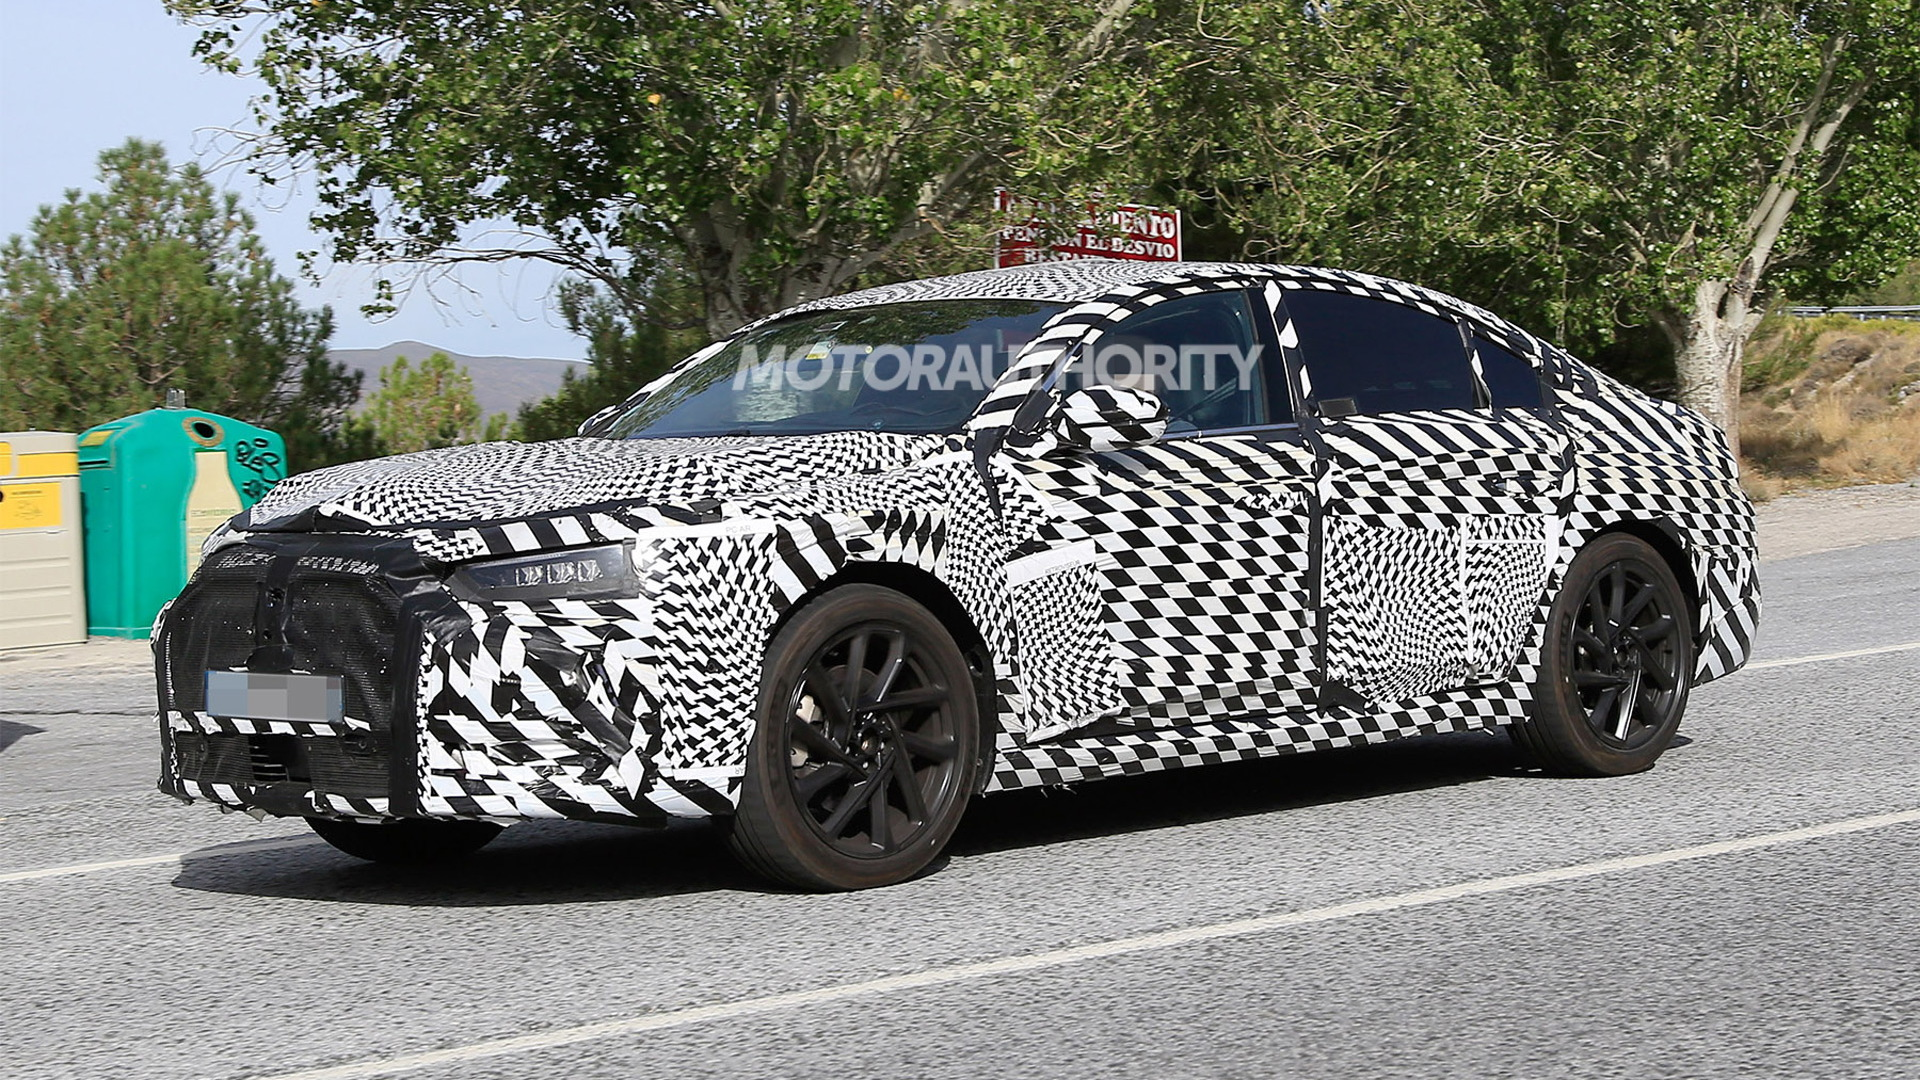 2020 DS 8 spy shots - Photo credit: S. Baldauf/SB-Medien